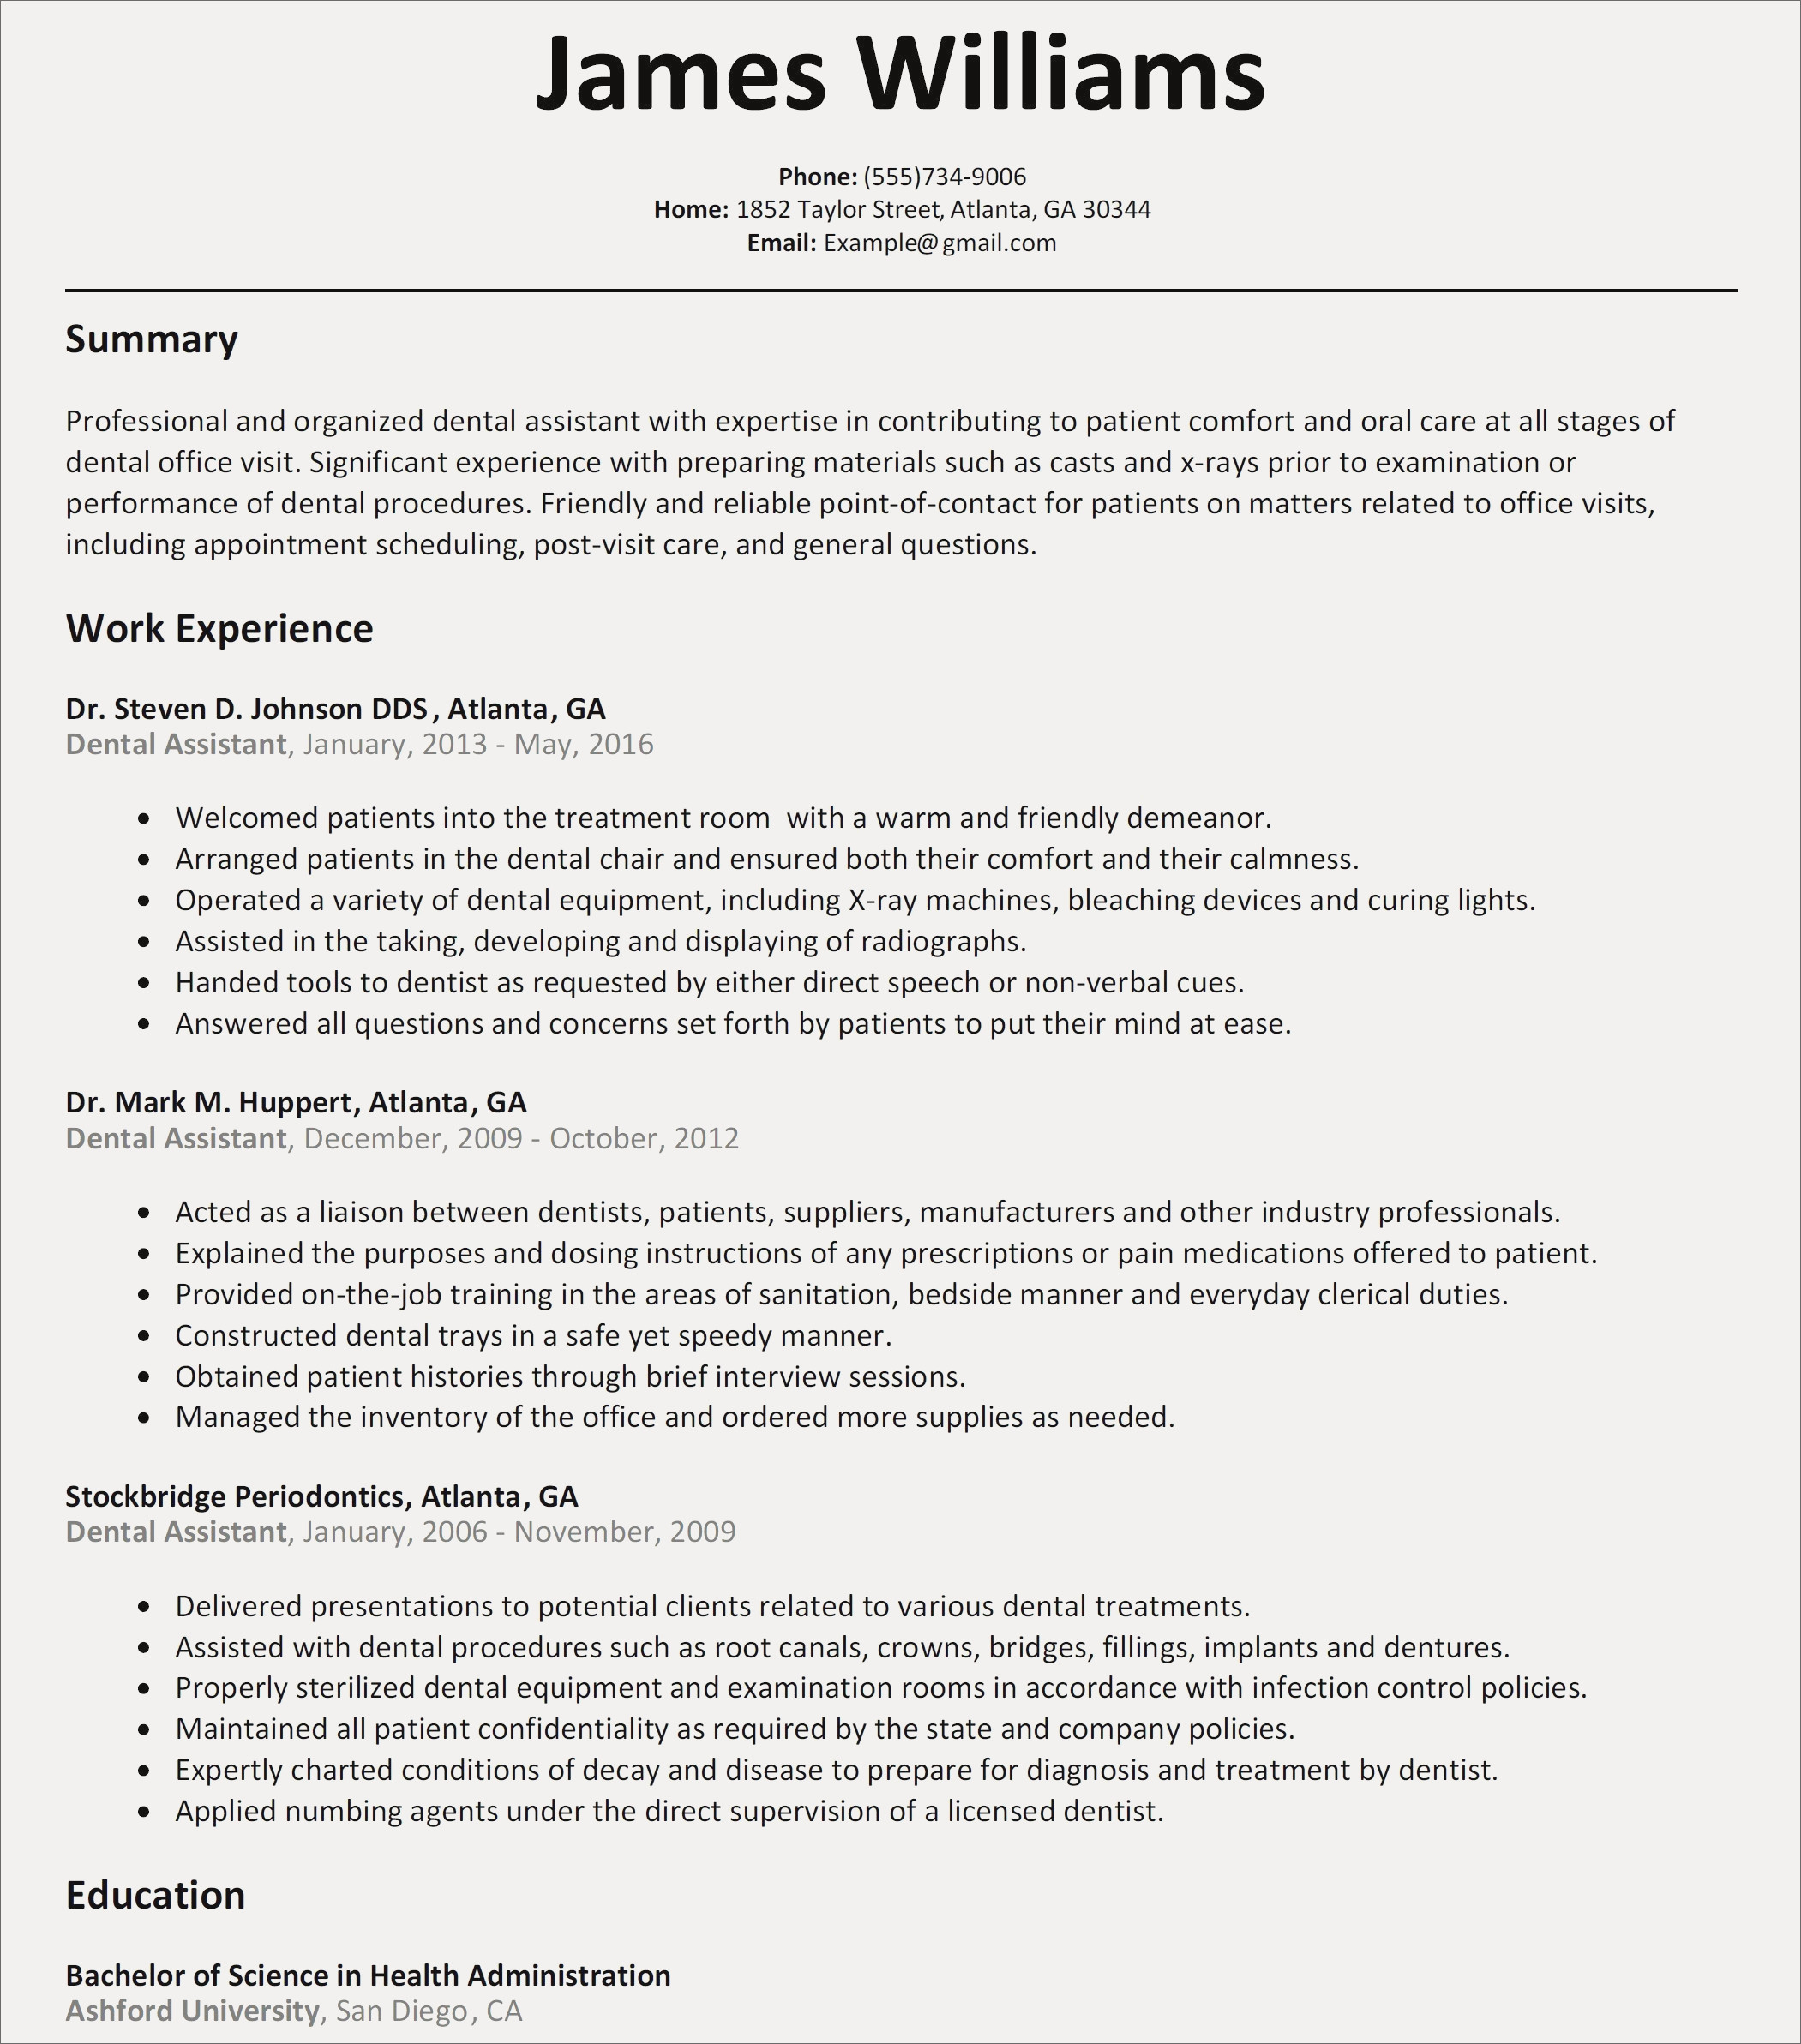 Direct Care Resume - How to Make A Resume Cove Best How to Write A Cover Letter for